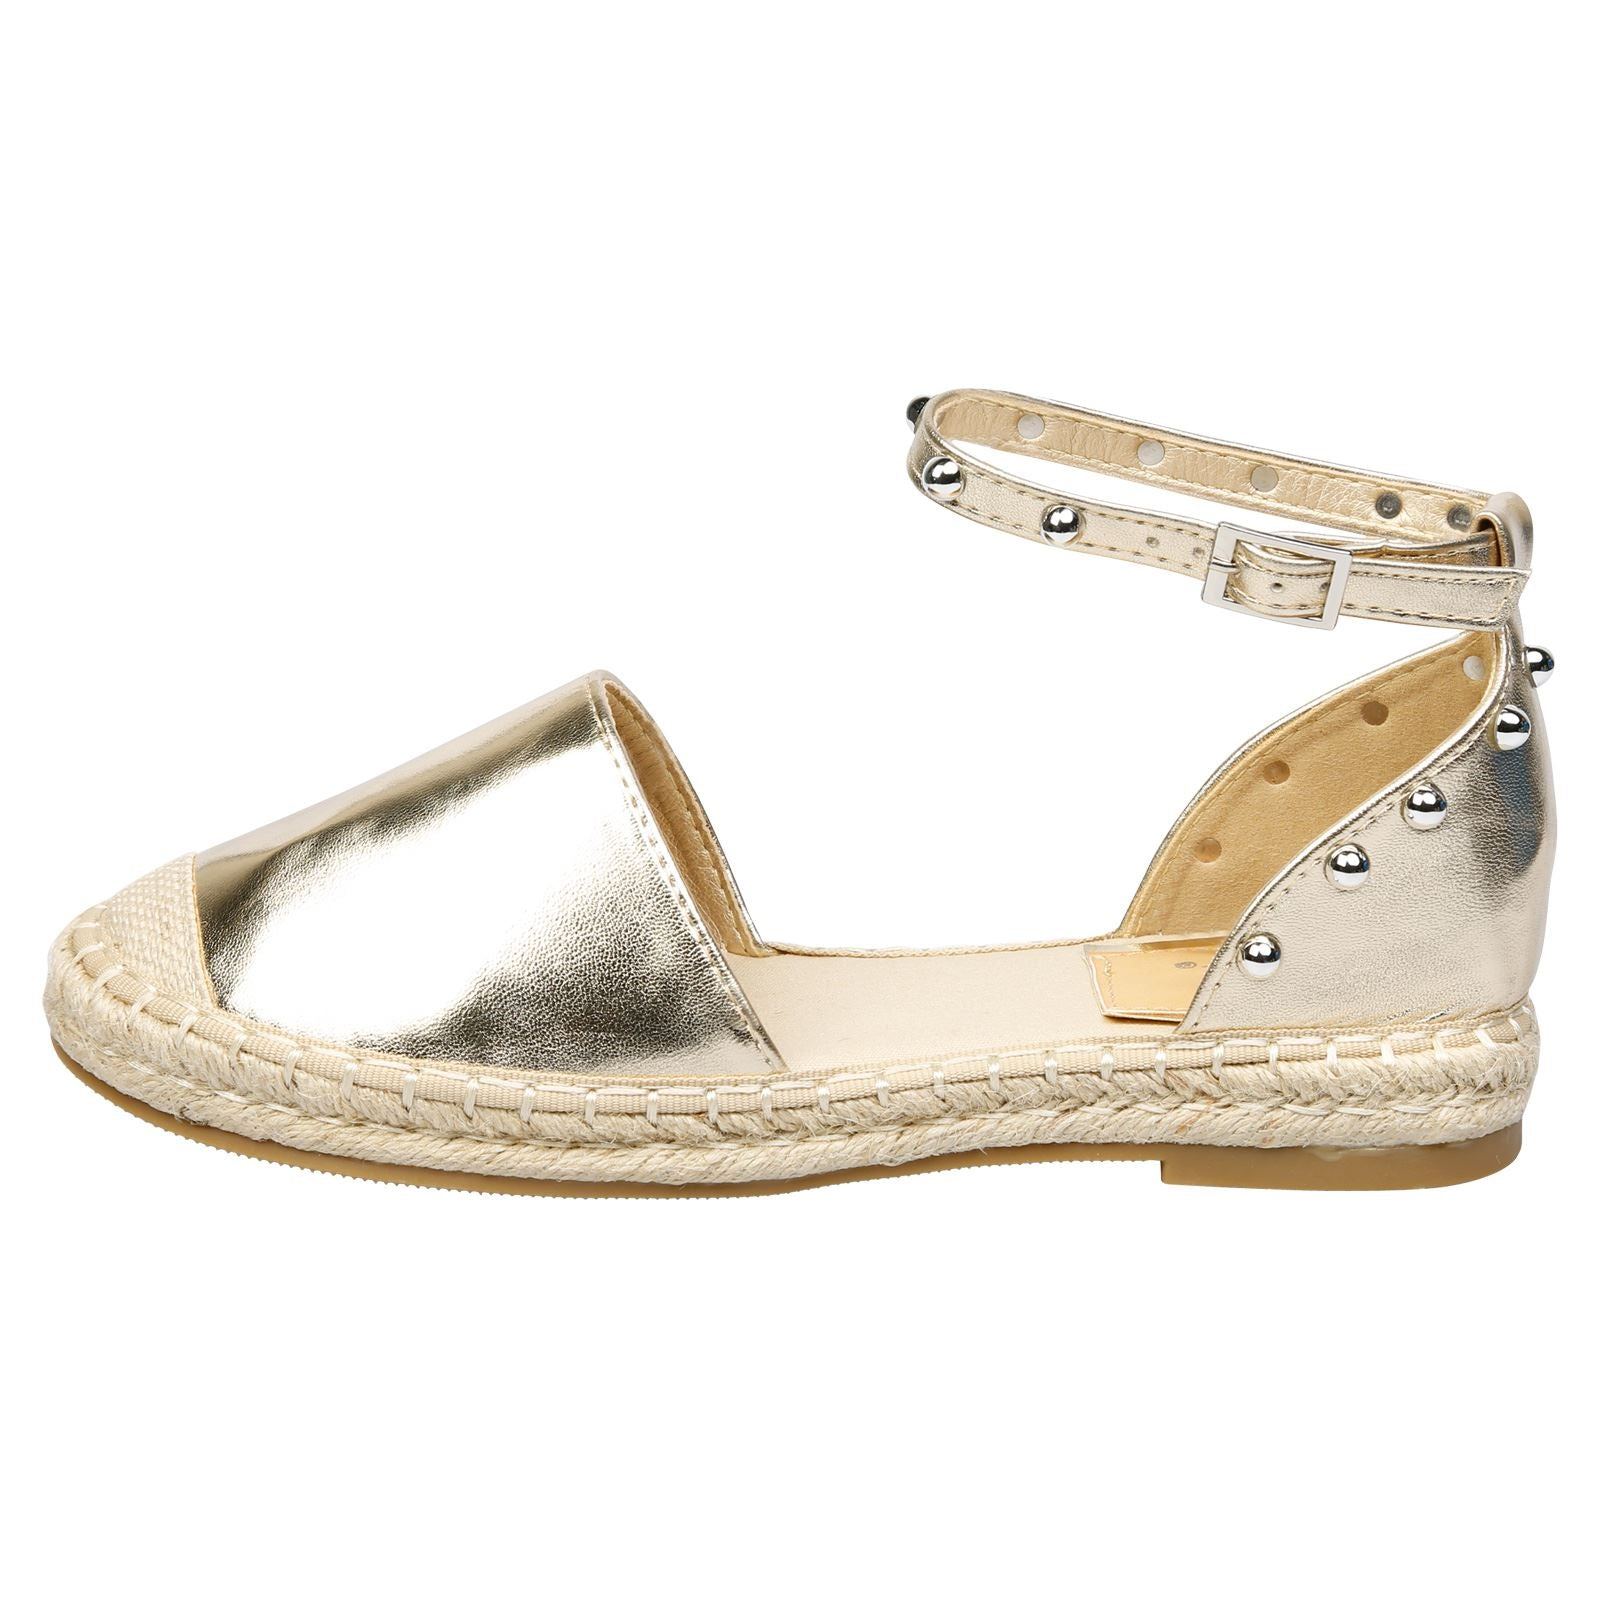 Andrea Studded Ankle Strap Espadrilles in Gold Faux Leather